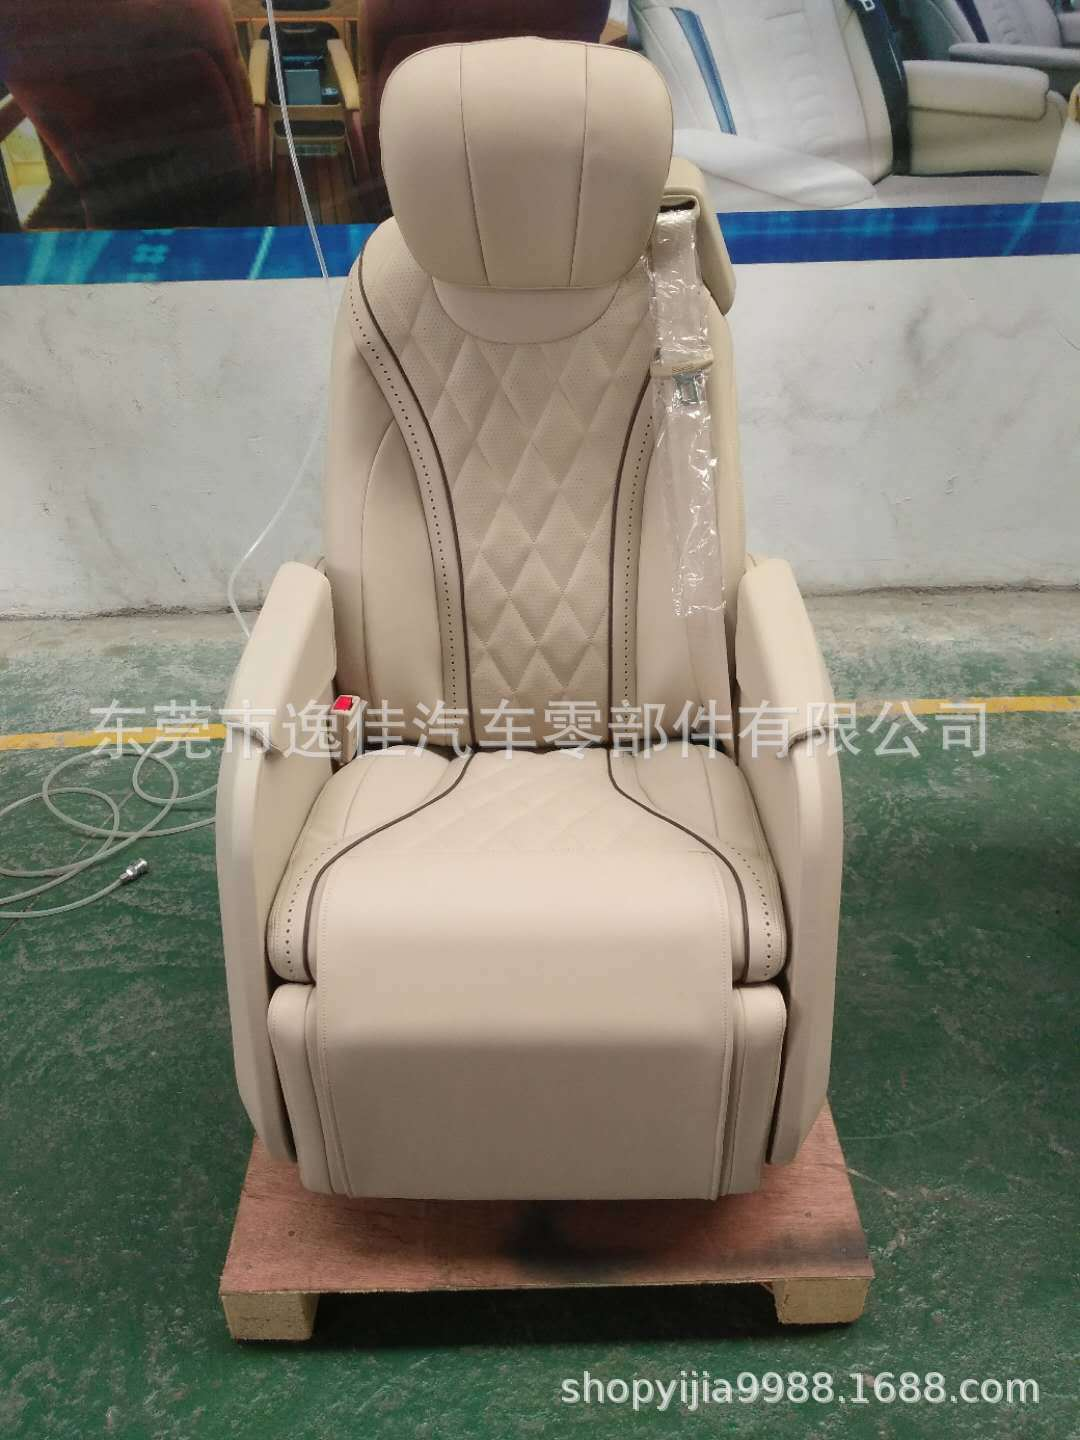 Customized high-end commercial vehicle aviation seat Car seat Smart seat Modified car seat RV seat